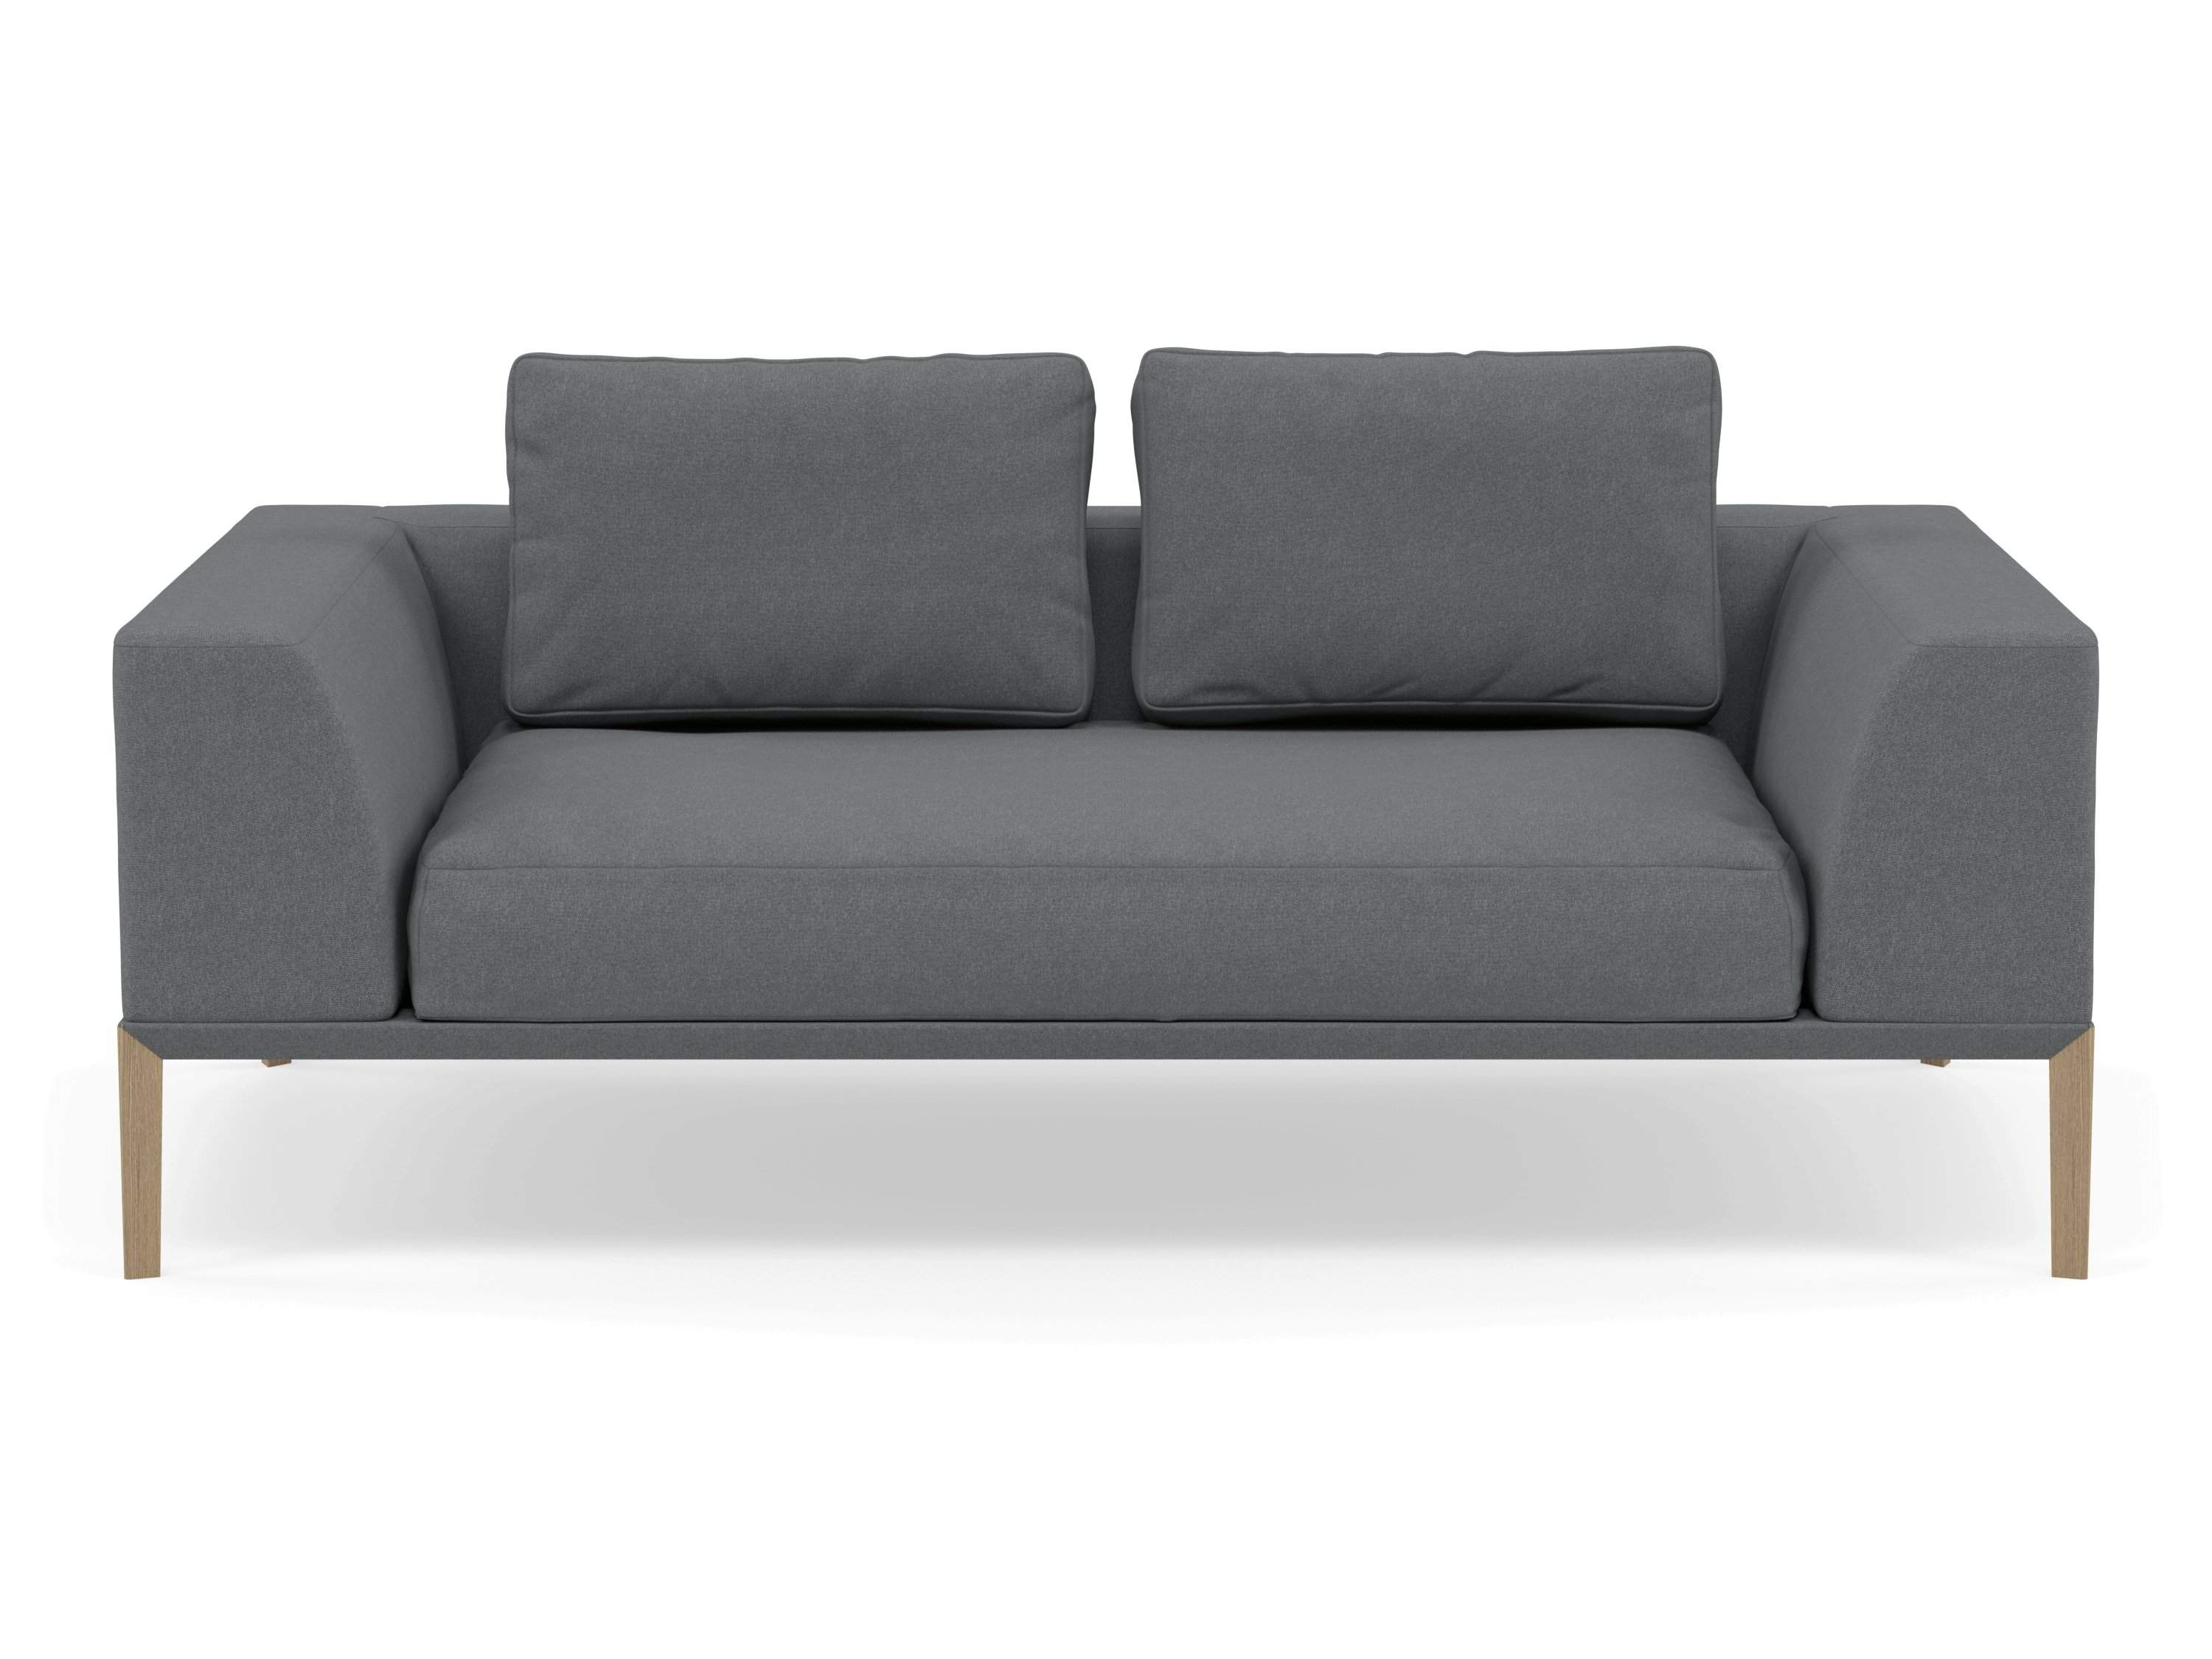 Modern 2 Seater Sofa with 2 Armrests in Sea Spray Blue Fabric